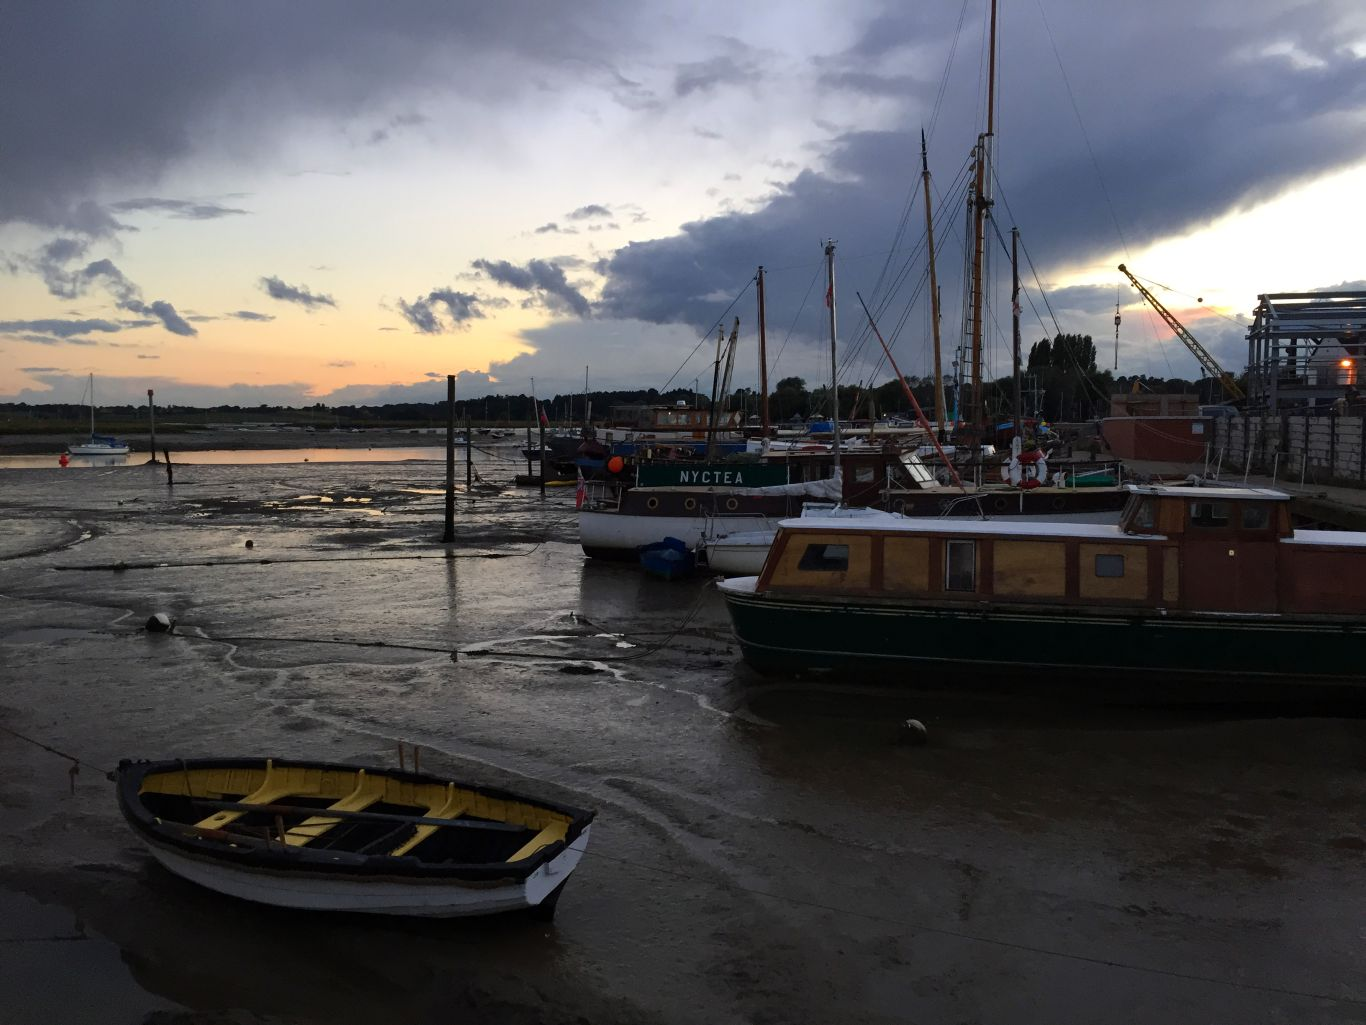 Drink in that sunset: the view looking out from the Tide Mill. Photo: Stephen Emms